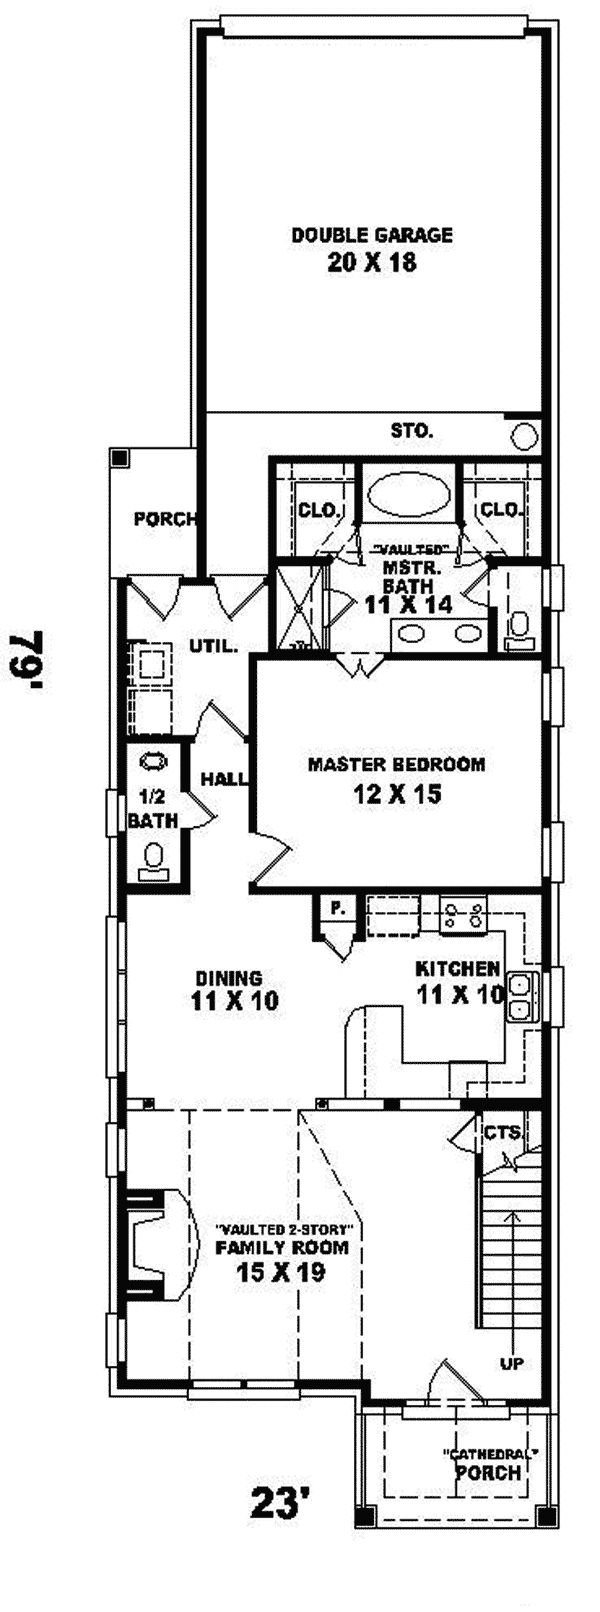 Best 25 narrow house plans ideas on pinterest narrow lot house plans narrow house designs - Narrow house plans for narrow lots pict ...